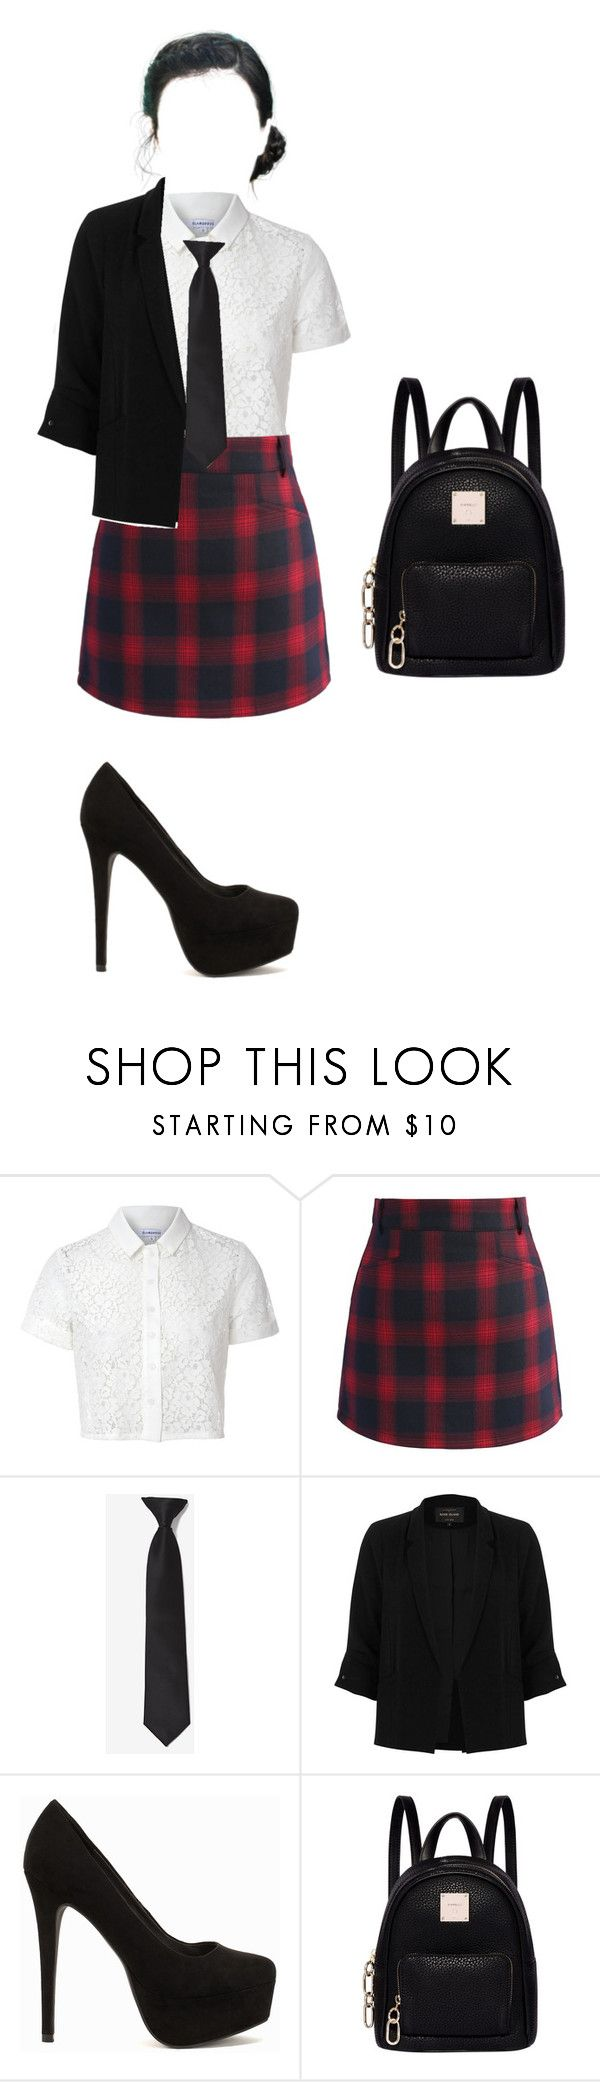 """""""school uniform"""" by fashion-fbi-2001 on Polyvore featuring Glamorous, Chicwish, River Island, Nly Shoes and Fiorelli"""